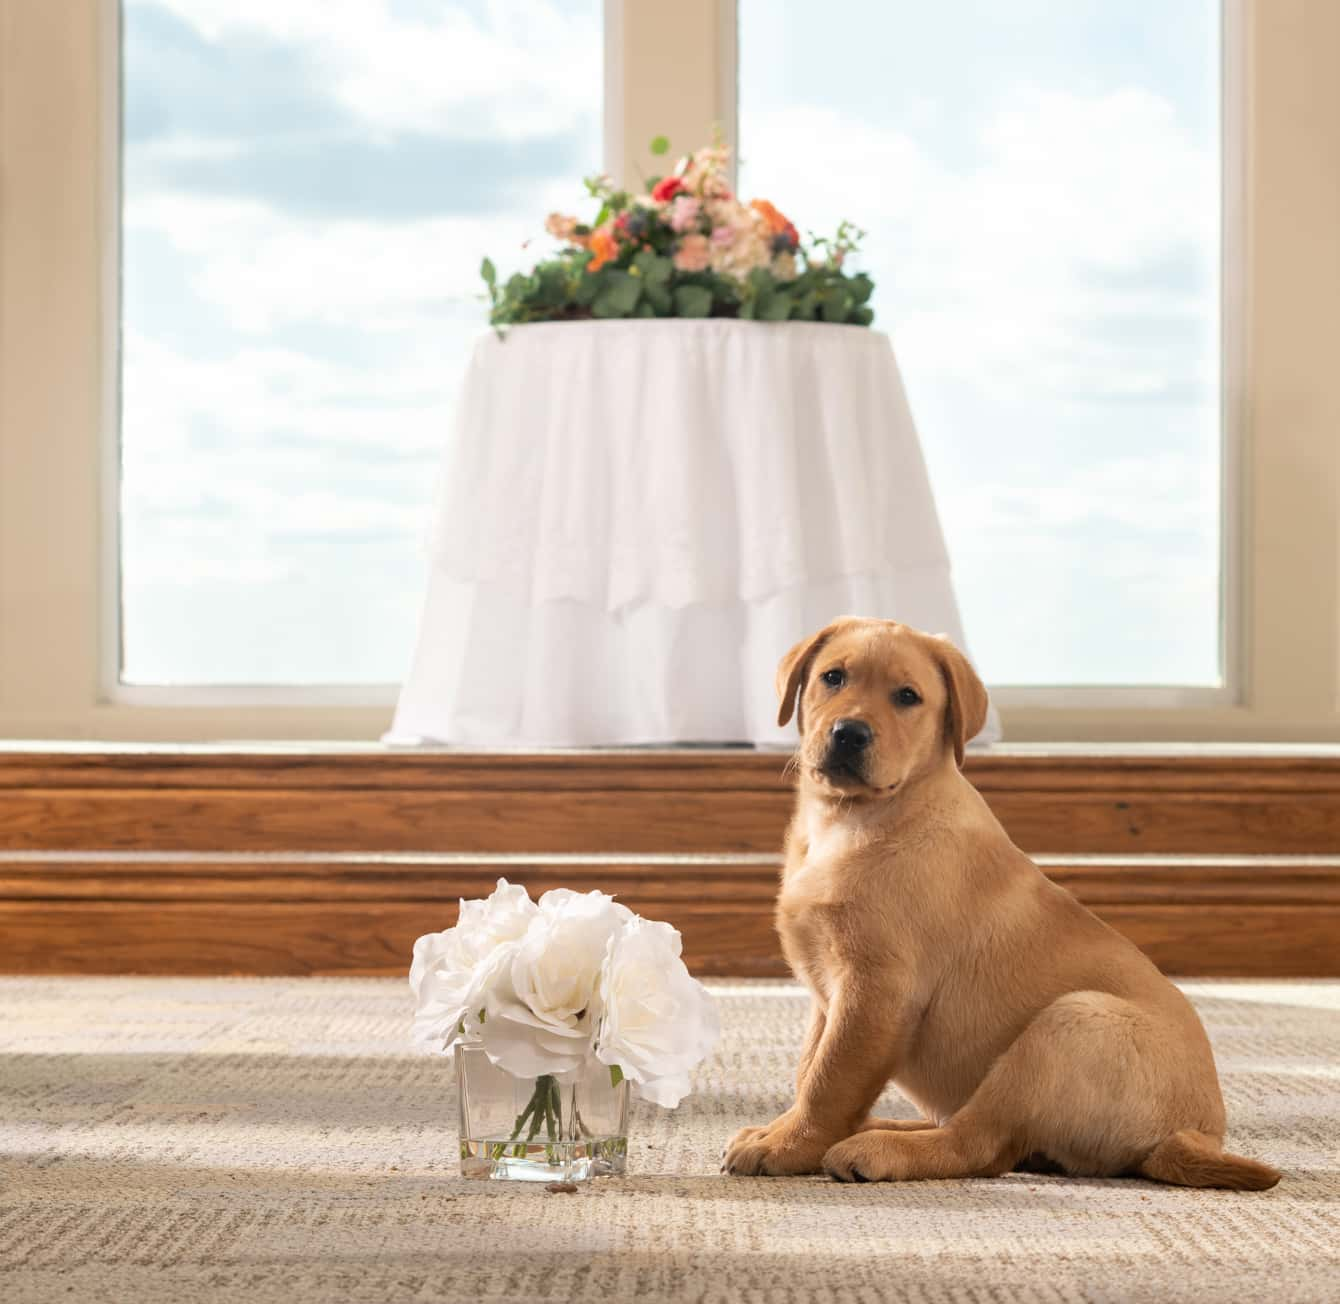 A brown puppy sitting in front of a flower looking at the camera - wedding websites